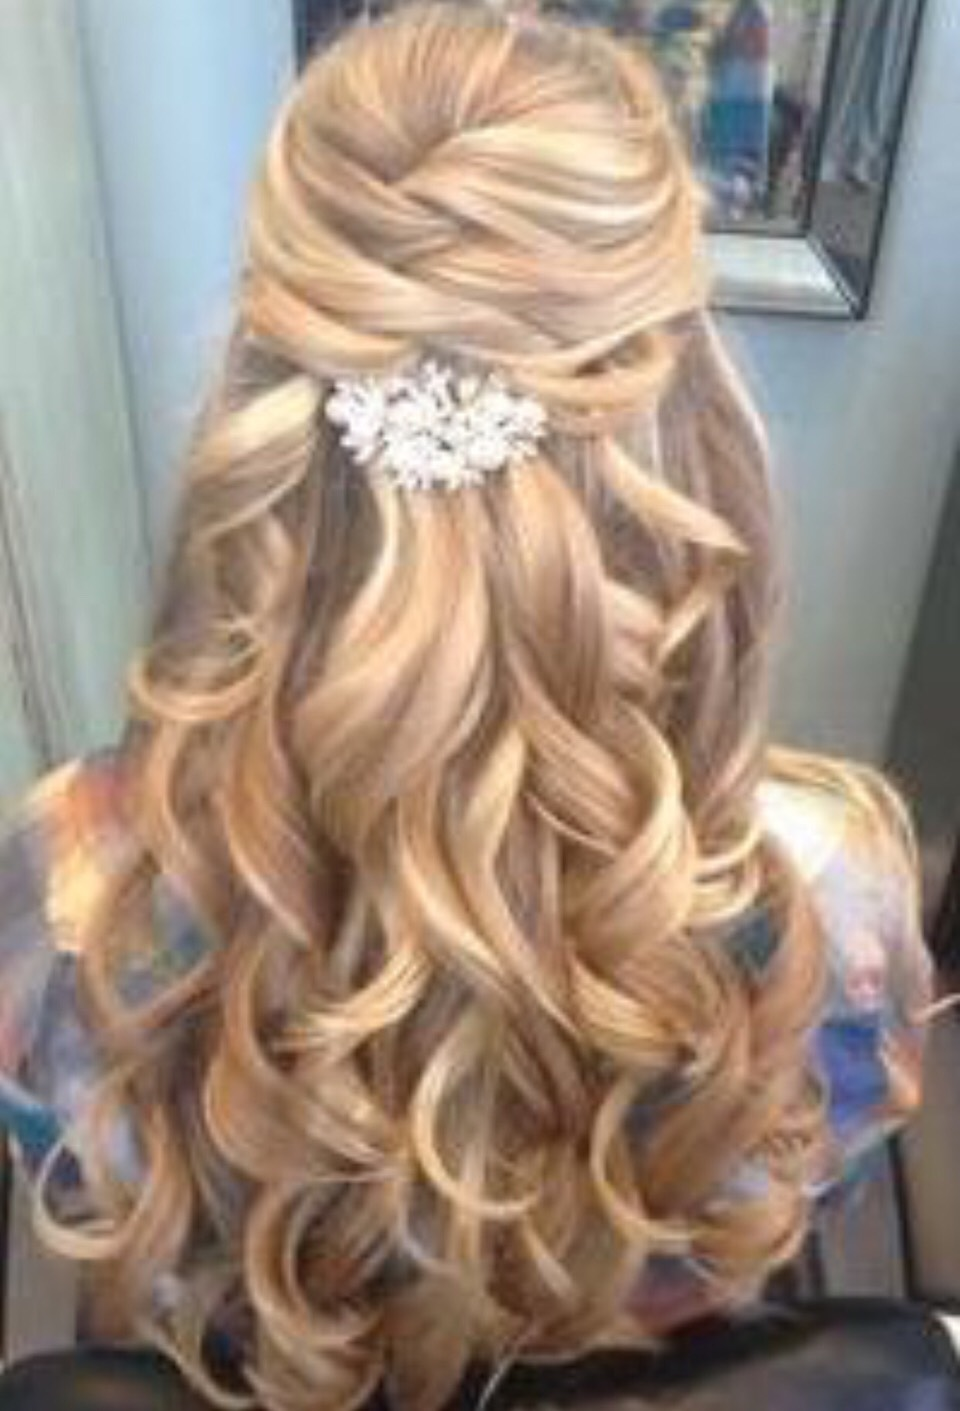 Simple but pretty hair style 🌸❤️😍